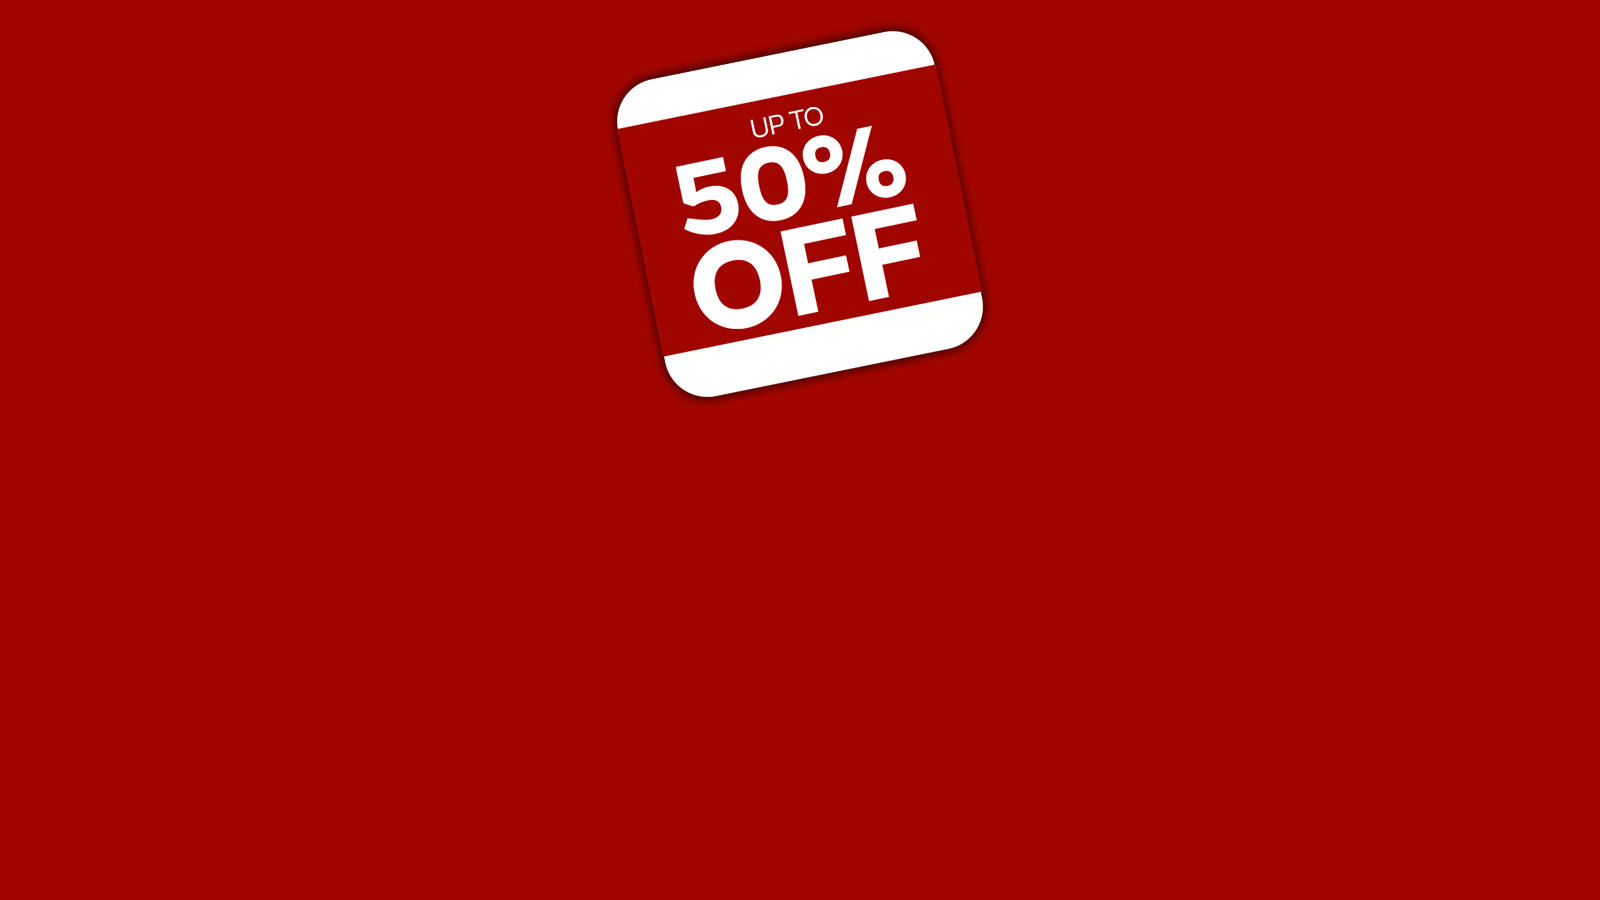 Up to 50% off - call us now